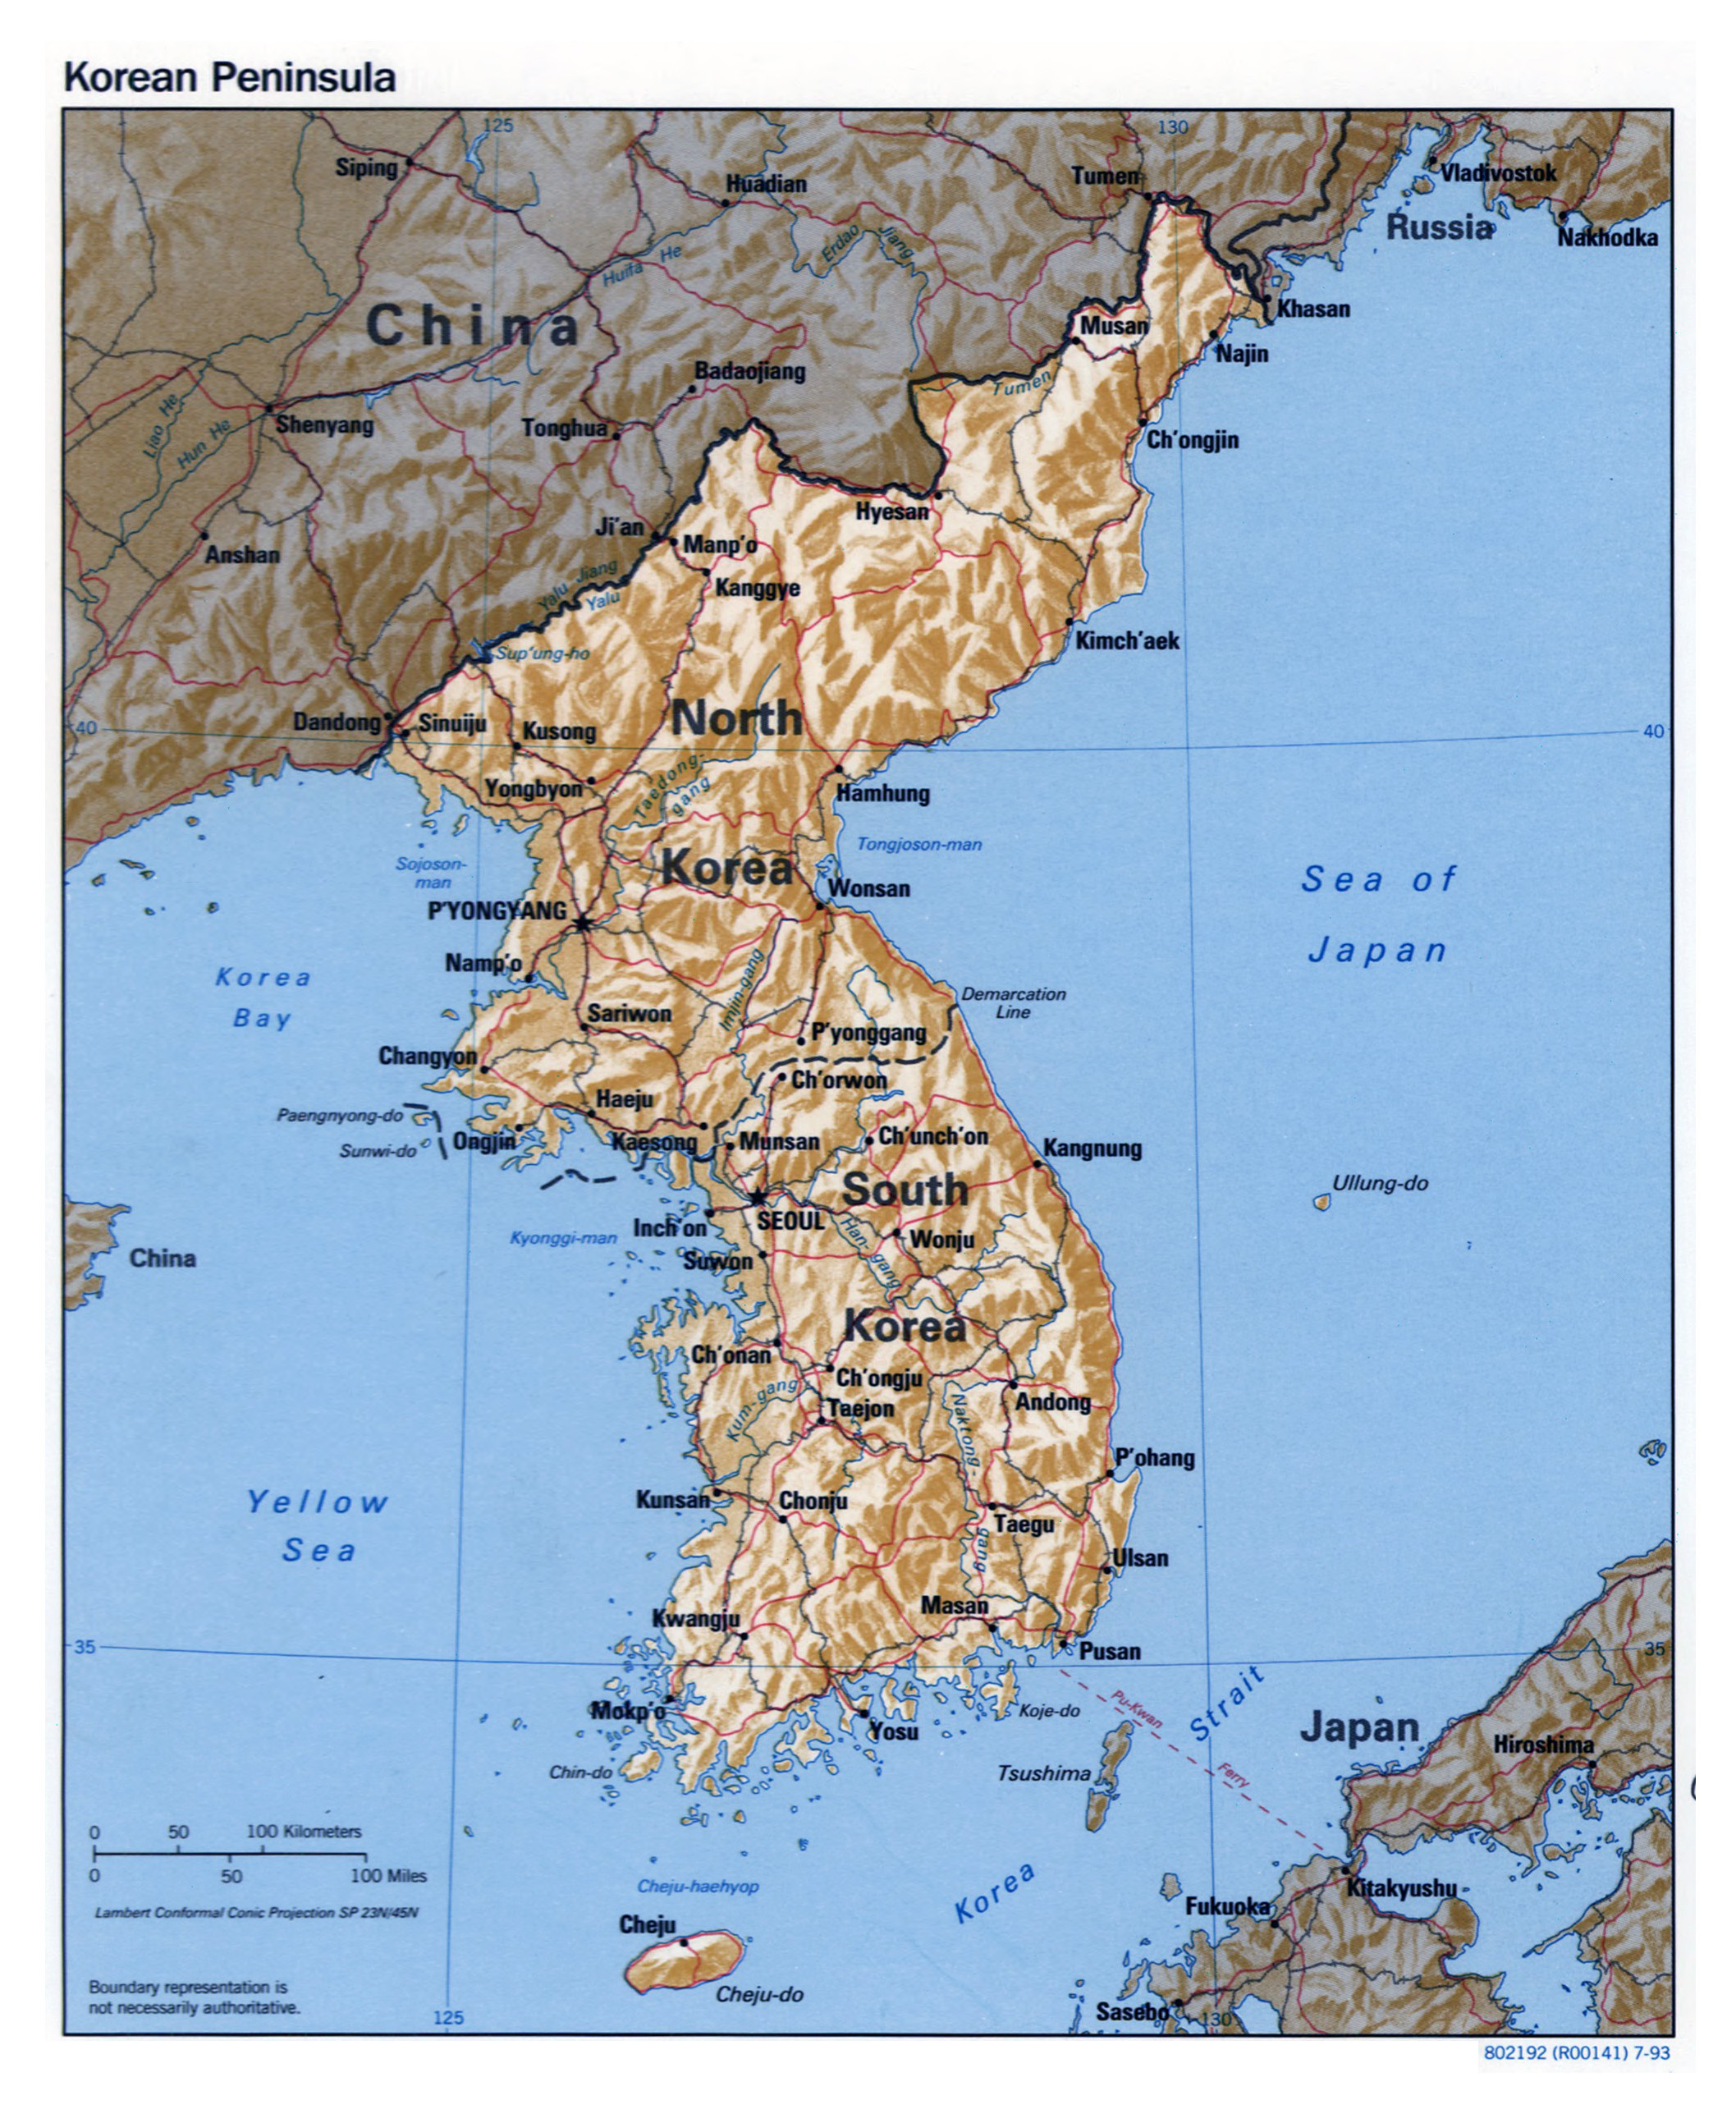 Large detailed political map of Korean Peninsula with relief, roads on caspian sea map, mongolia map, germany map, himalayan mountains map, japan map, taiwan map, huang he river map, korean war 38th parallel korea map, sichuan basin map, gobi desert map, indus river map, ganges river map, yellow sea map, vietnam map, indonesia map, china map, indian ocean map, 38th parallel north map, outer rim map, plateau of tibet map,